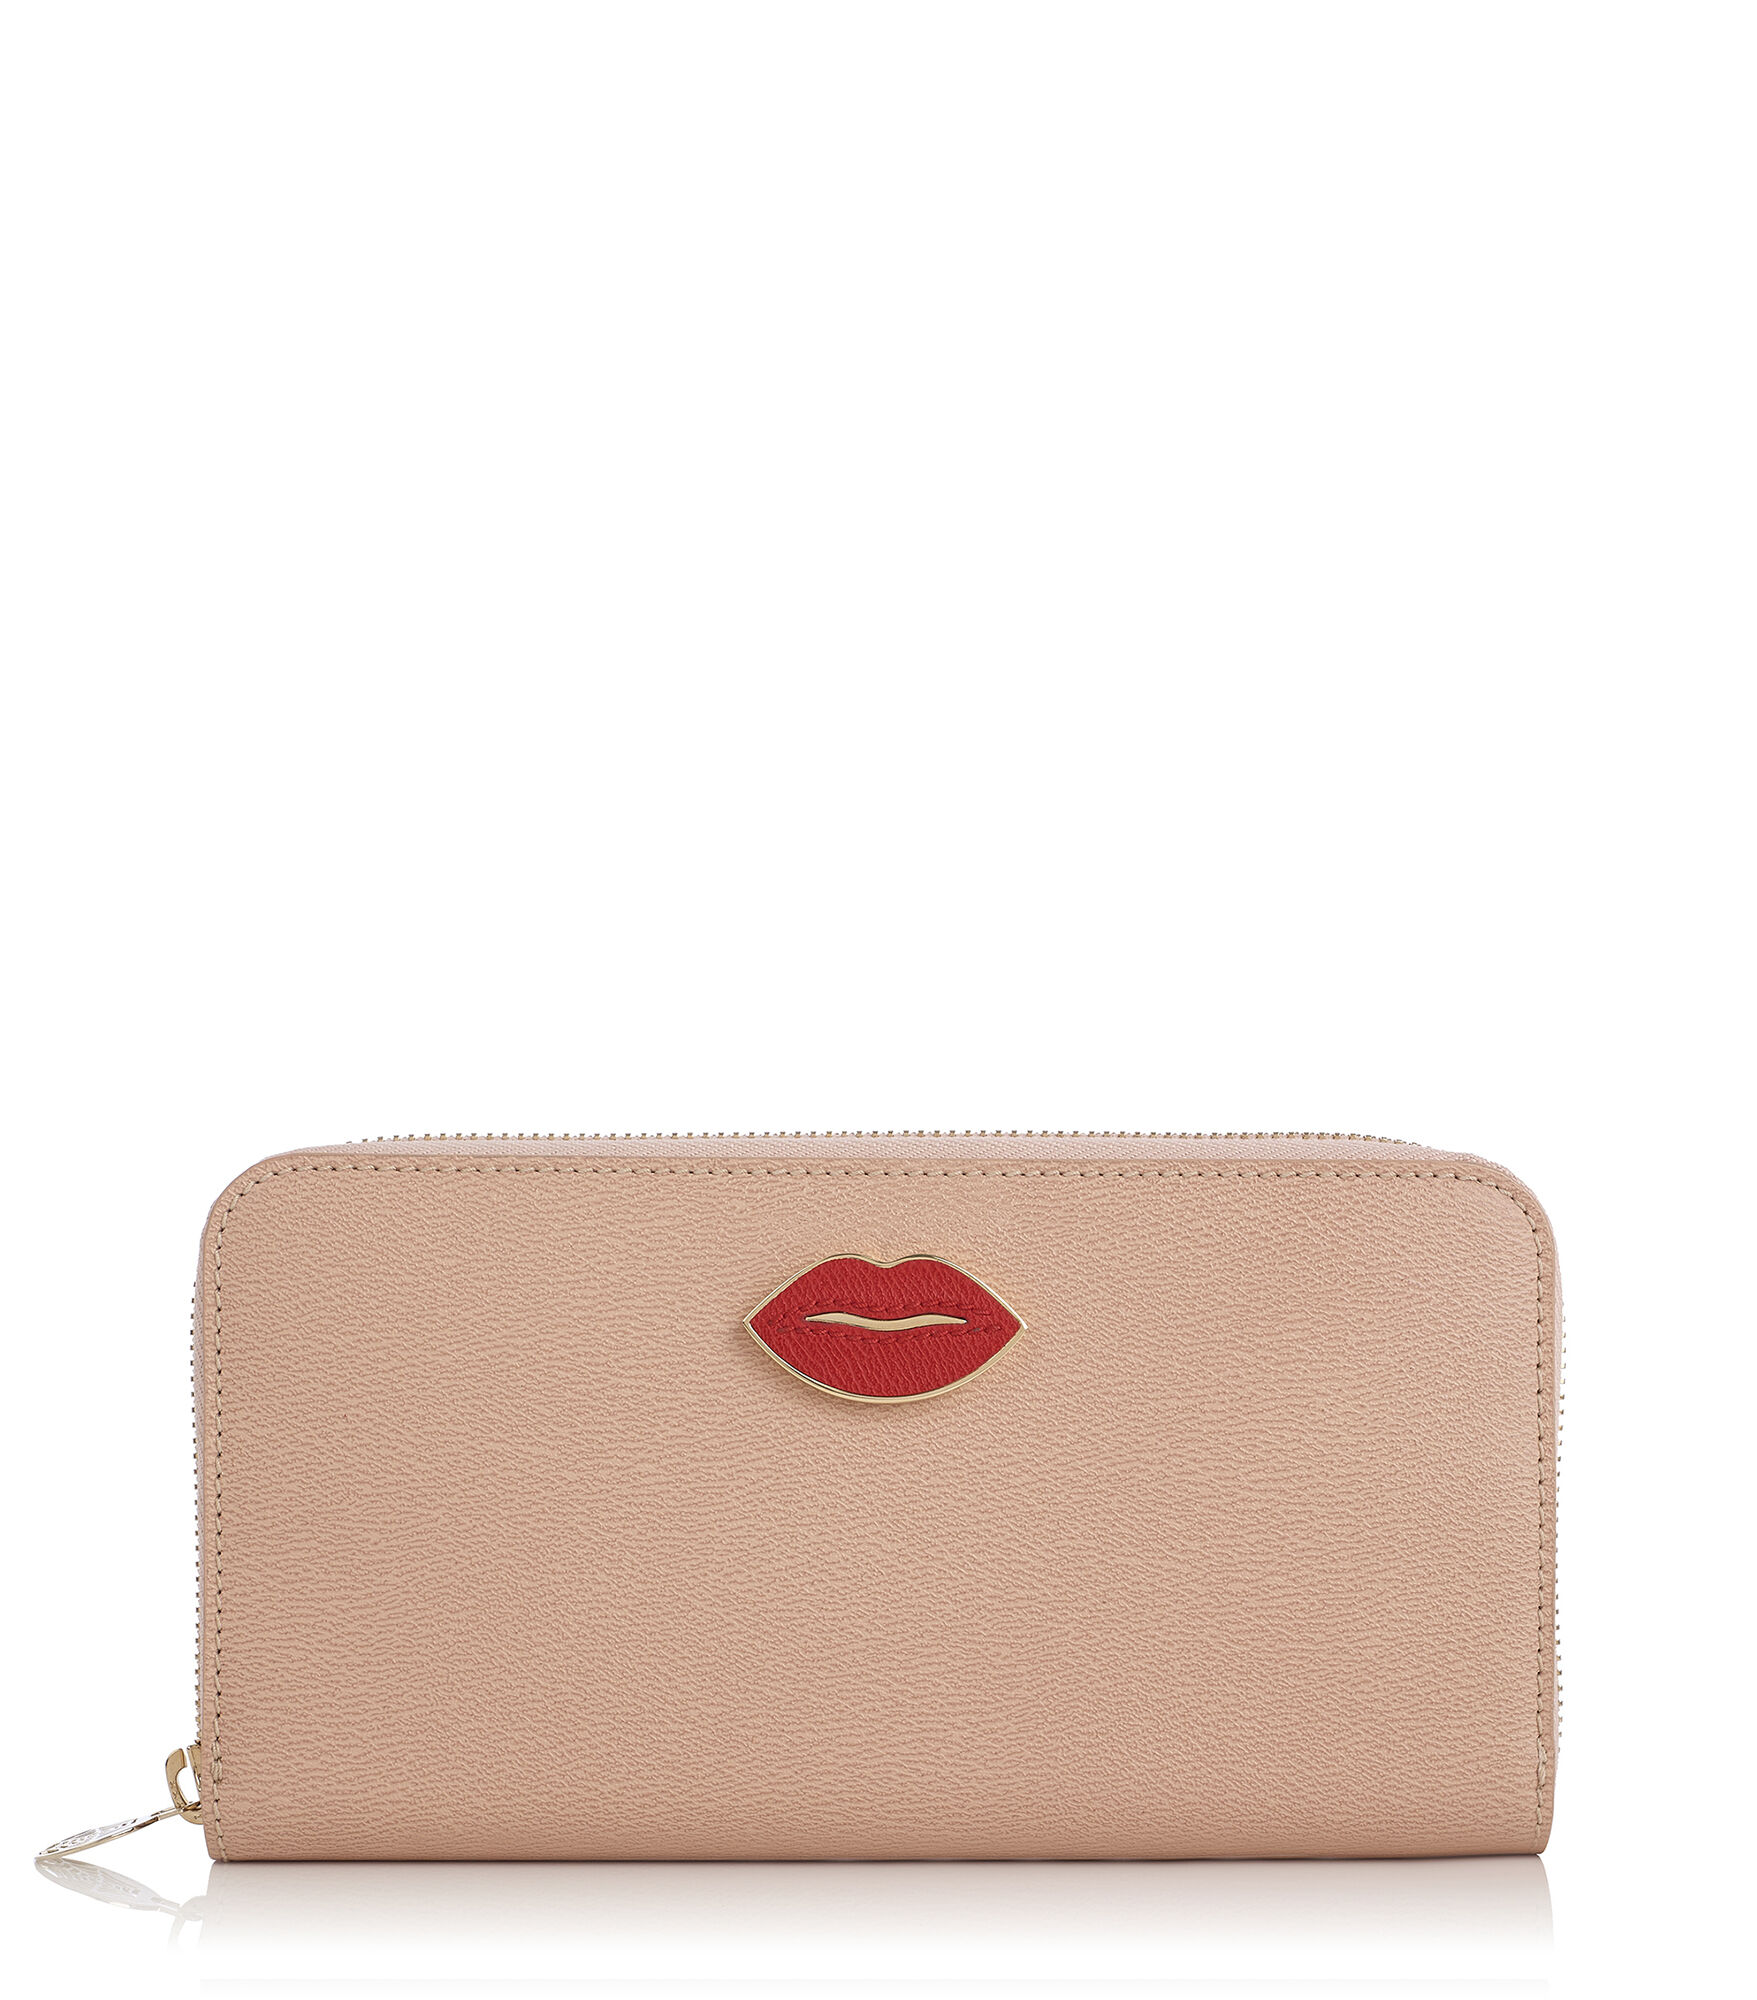 Charlotte Olympia Small Leather Goods Women - ZIP WALLET BLUSH Grained Calfskin OS